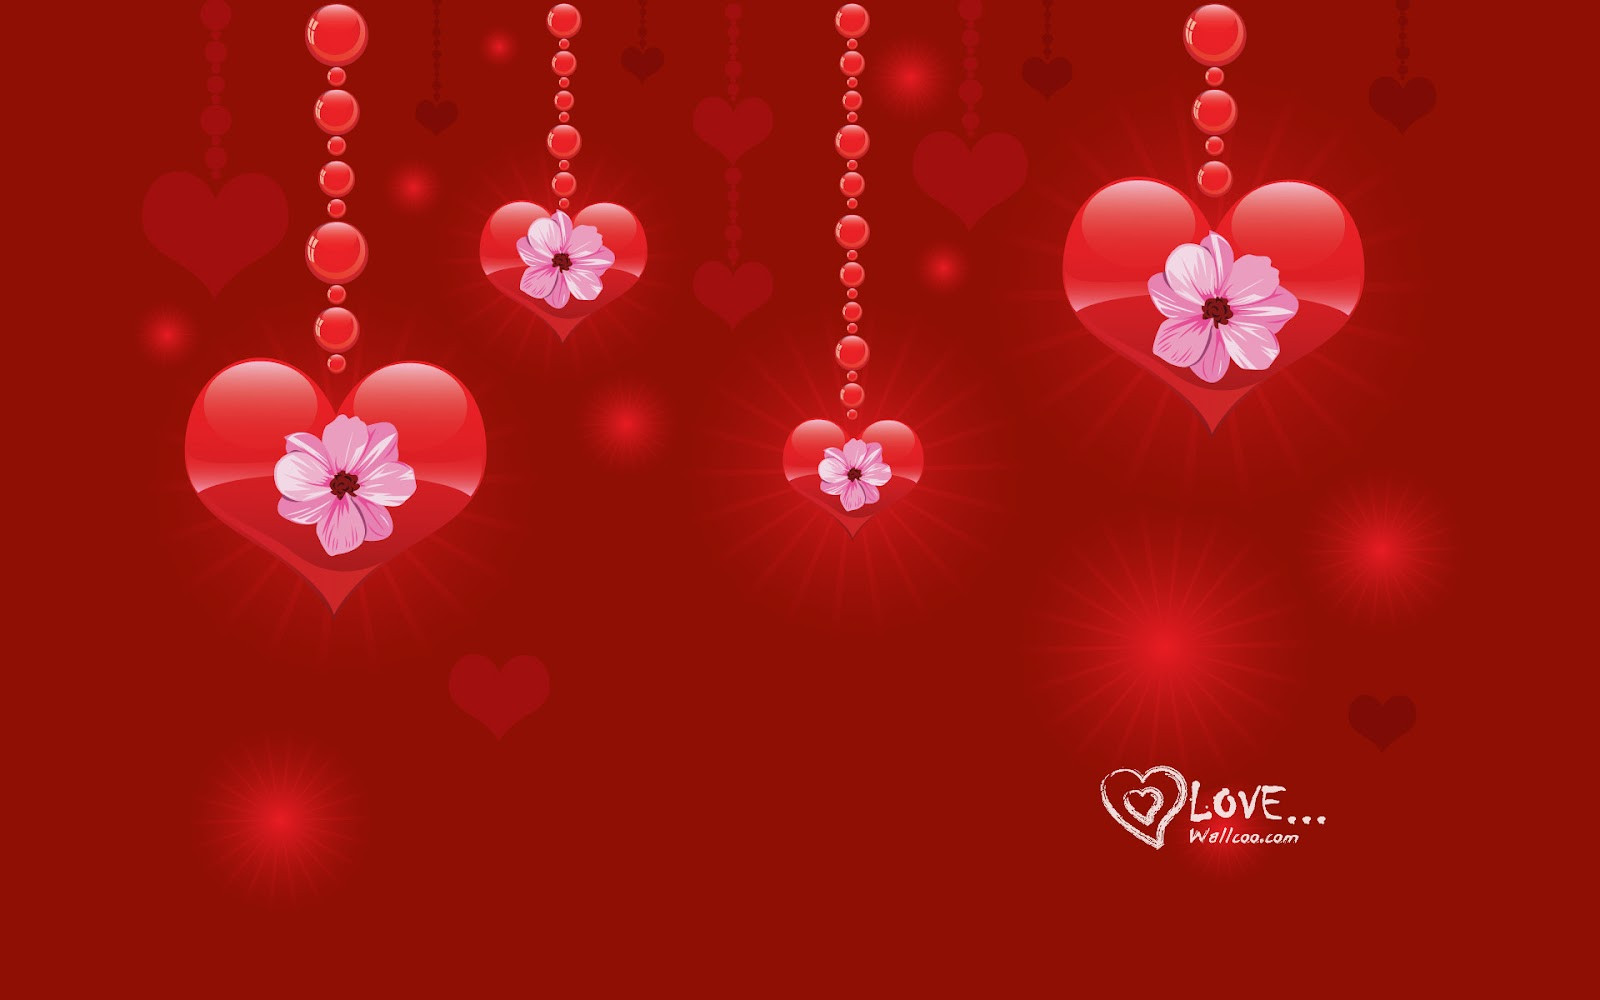 Red Heart with Love New Heart Wallpapers Red Heart Wallpapers Of Red Heart with Love Fresh Love Heart Impremedia